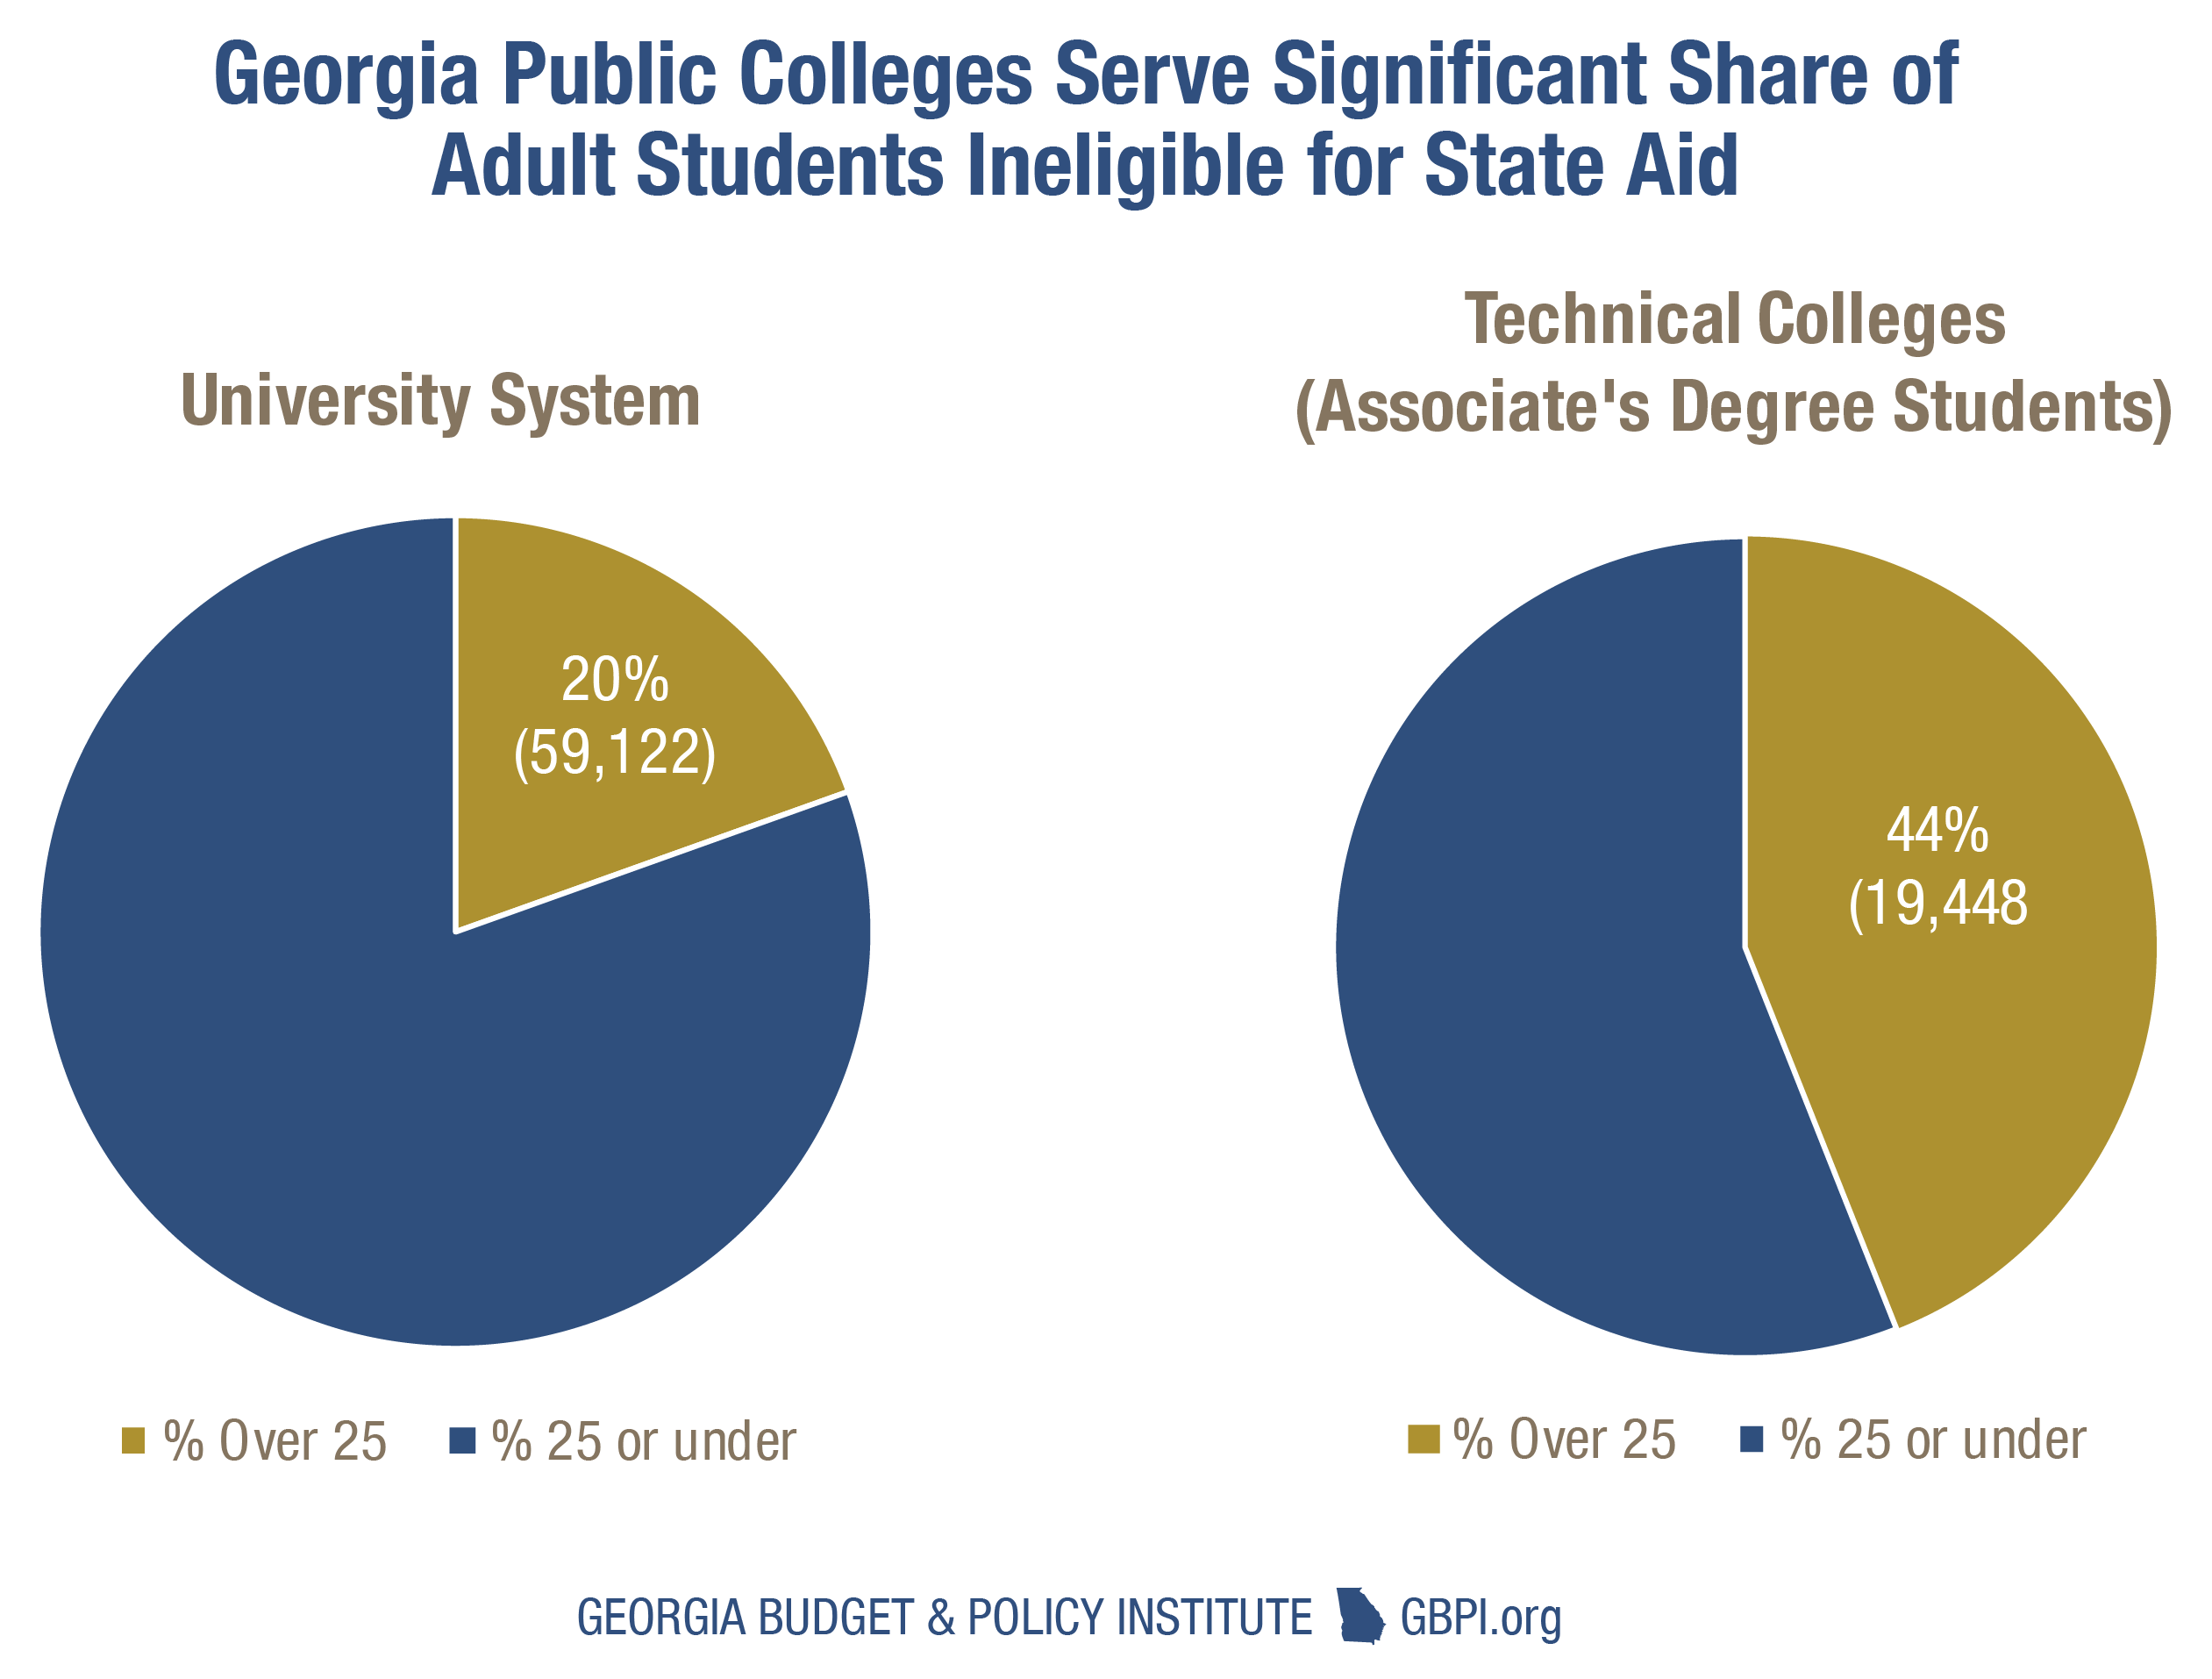 Strengthen georgias workforce by making college affordable for all source analysis of university system of georgia and technical college system of georgia data xflitez Choice Image